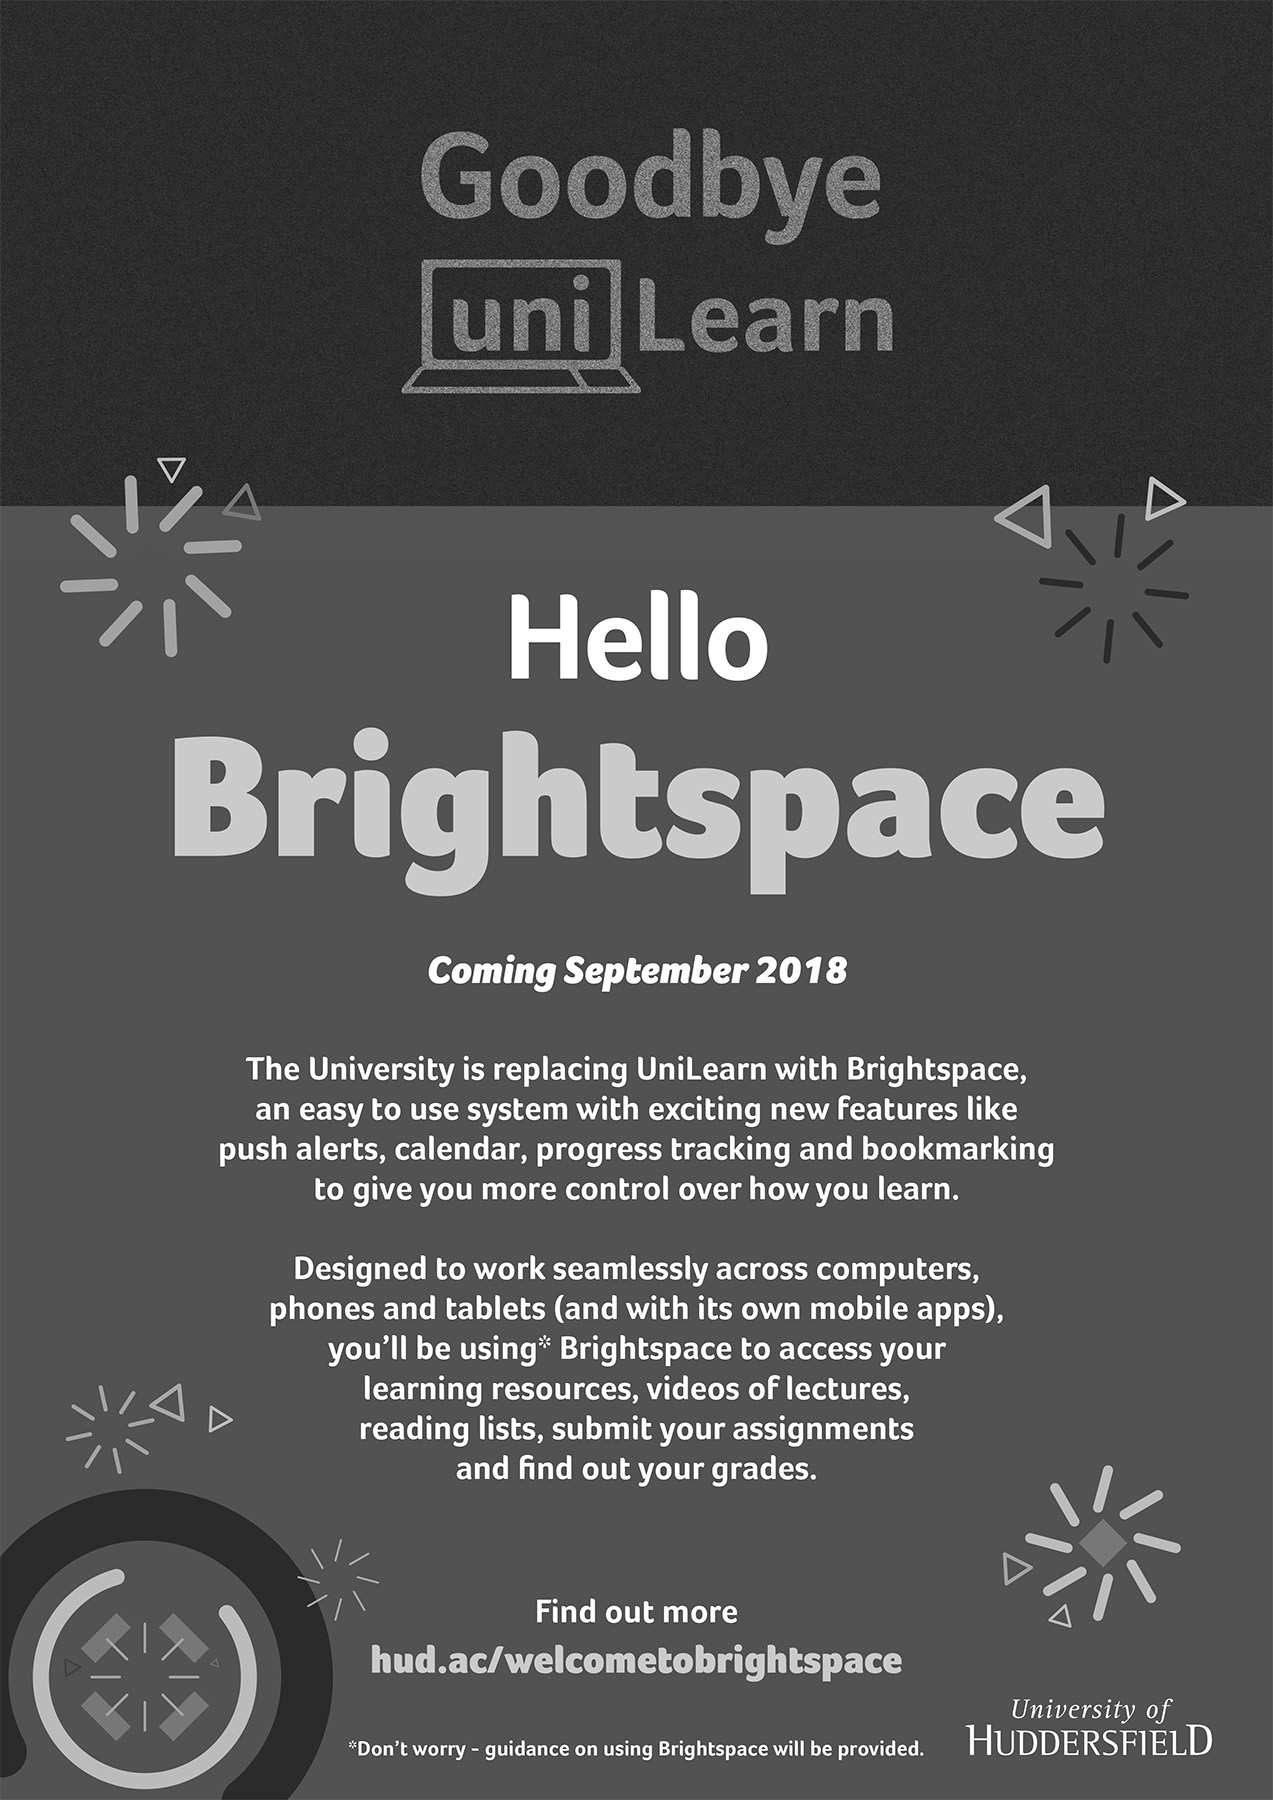 Brightspace replaces UniLearn in September 2018. Brightspace is an easy to use system to access your learning resources, videos of lectures and reading lists, to submit your assessments and find out your grades. Brightspace works seamlessly across computers, phones and tablets.